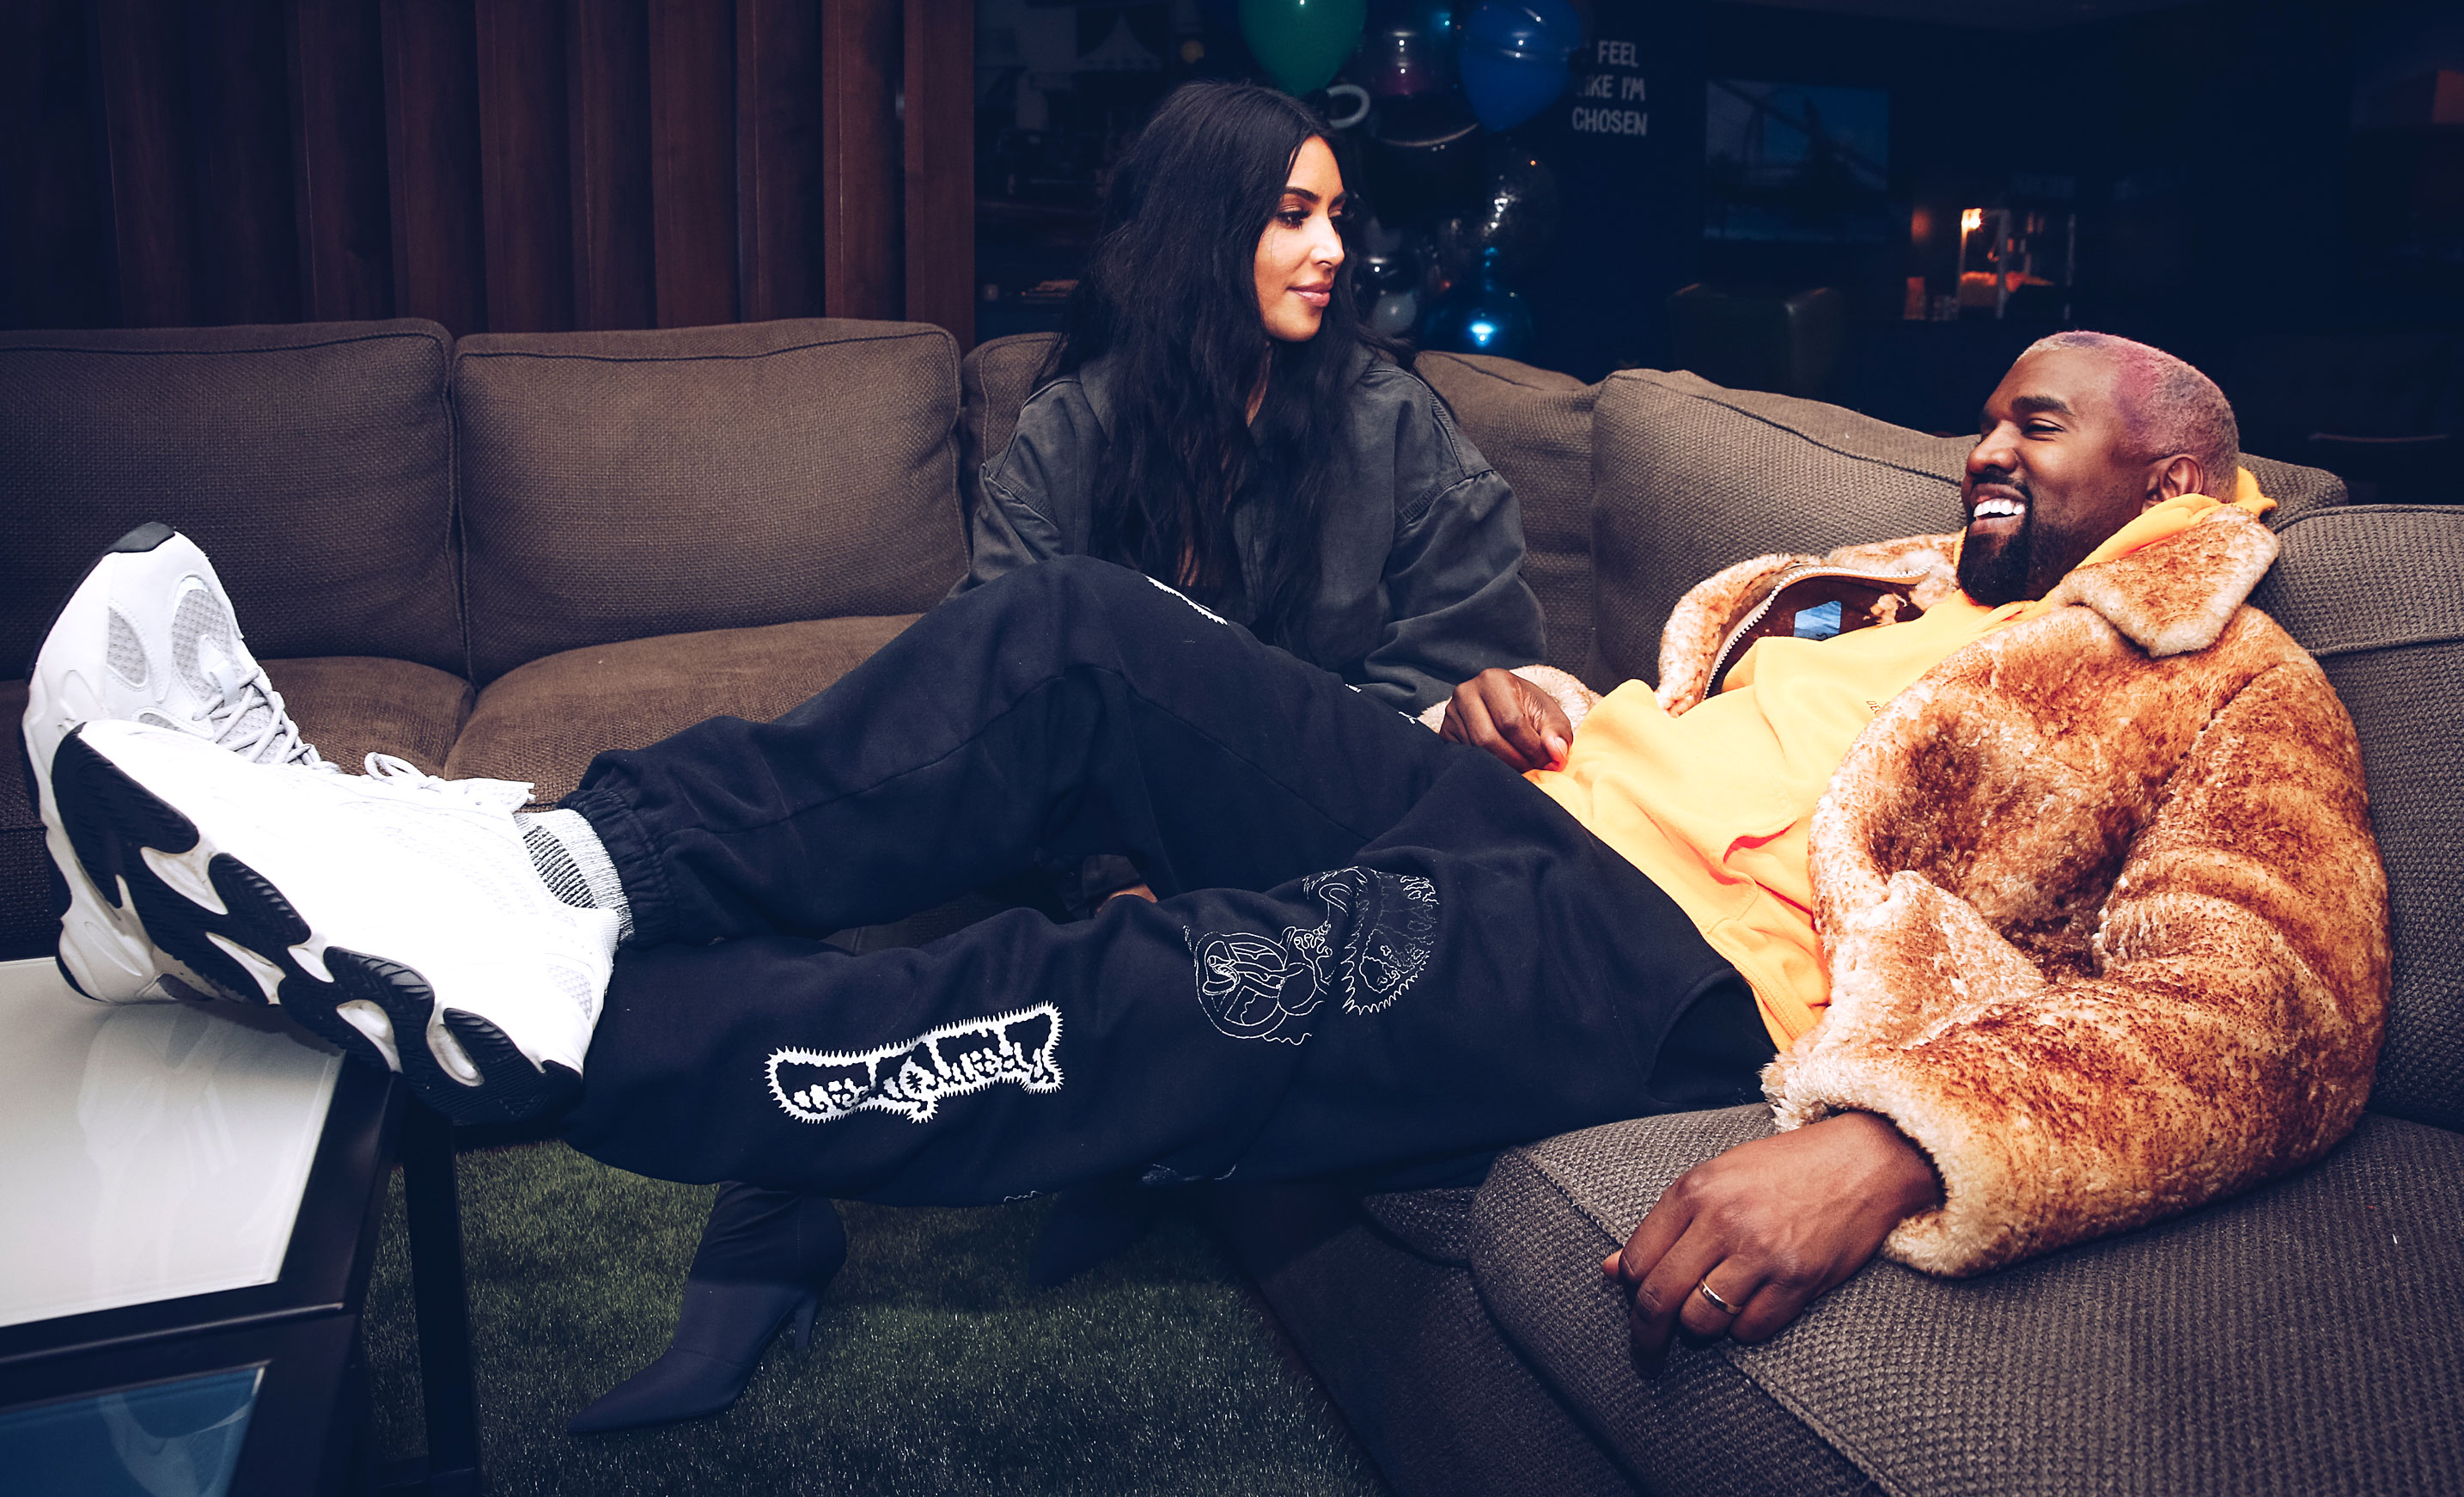 Kim Kardashian and Kanye West Welcome Their Fourth Child Via Surrogate - Kim Kardashian West and Kanye West attend the Travis Scott Astroworld Tour at The Forum on December 19, 2018 in Inglewood, California.